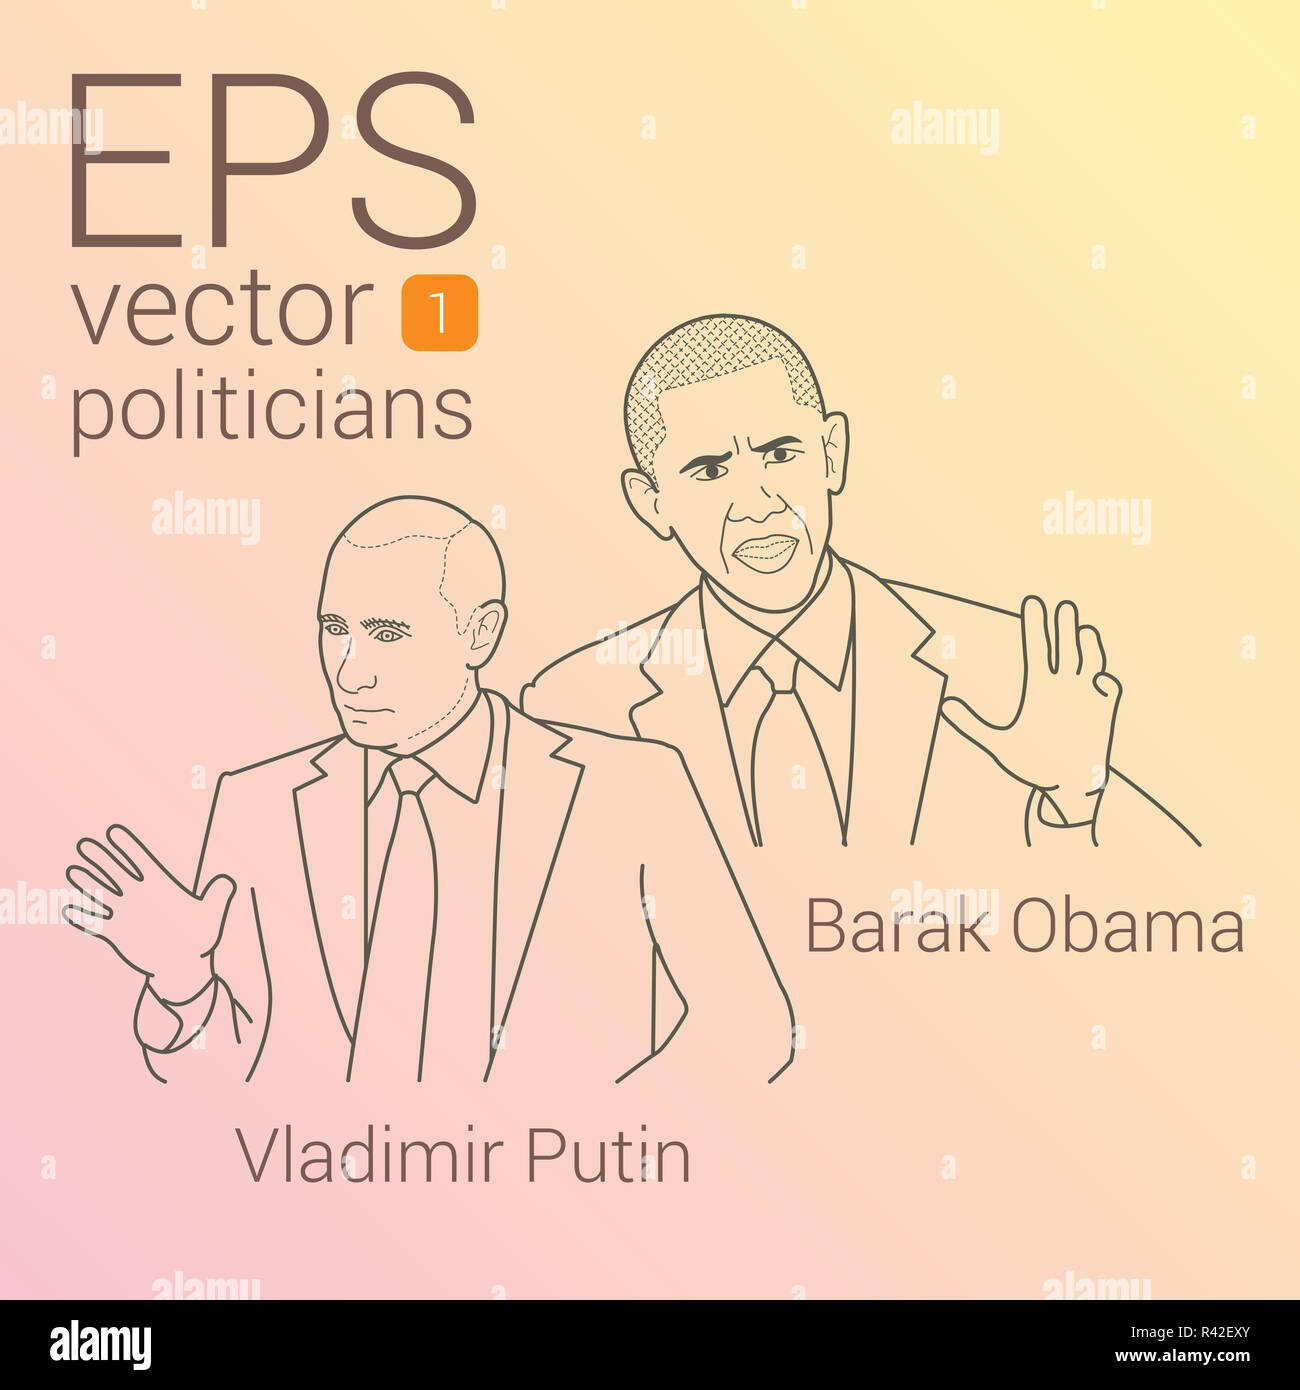 vector portrait of two presidents Barack Obama and Vladimir Putin - Stock Image